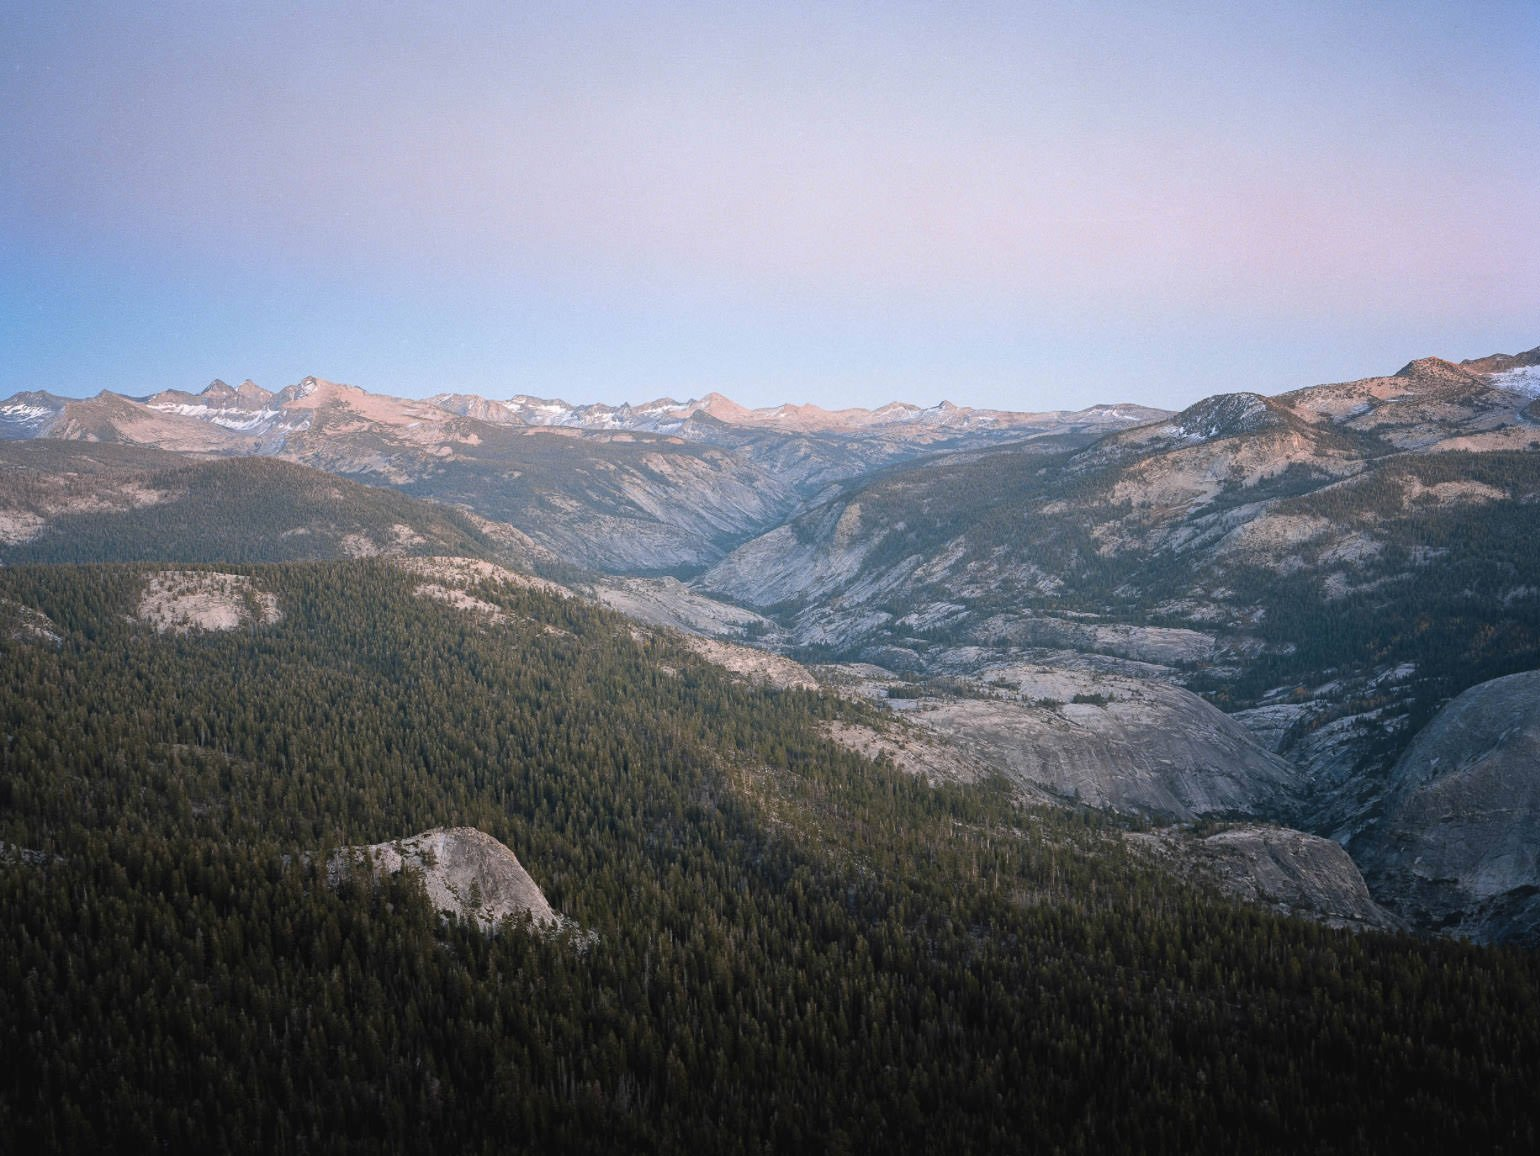 Landscape mountain color photography by Cody Cobb